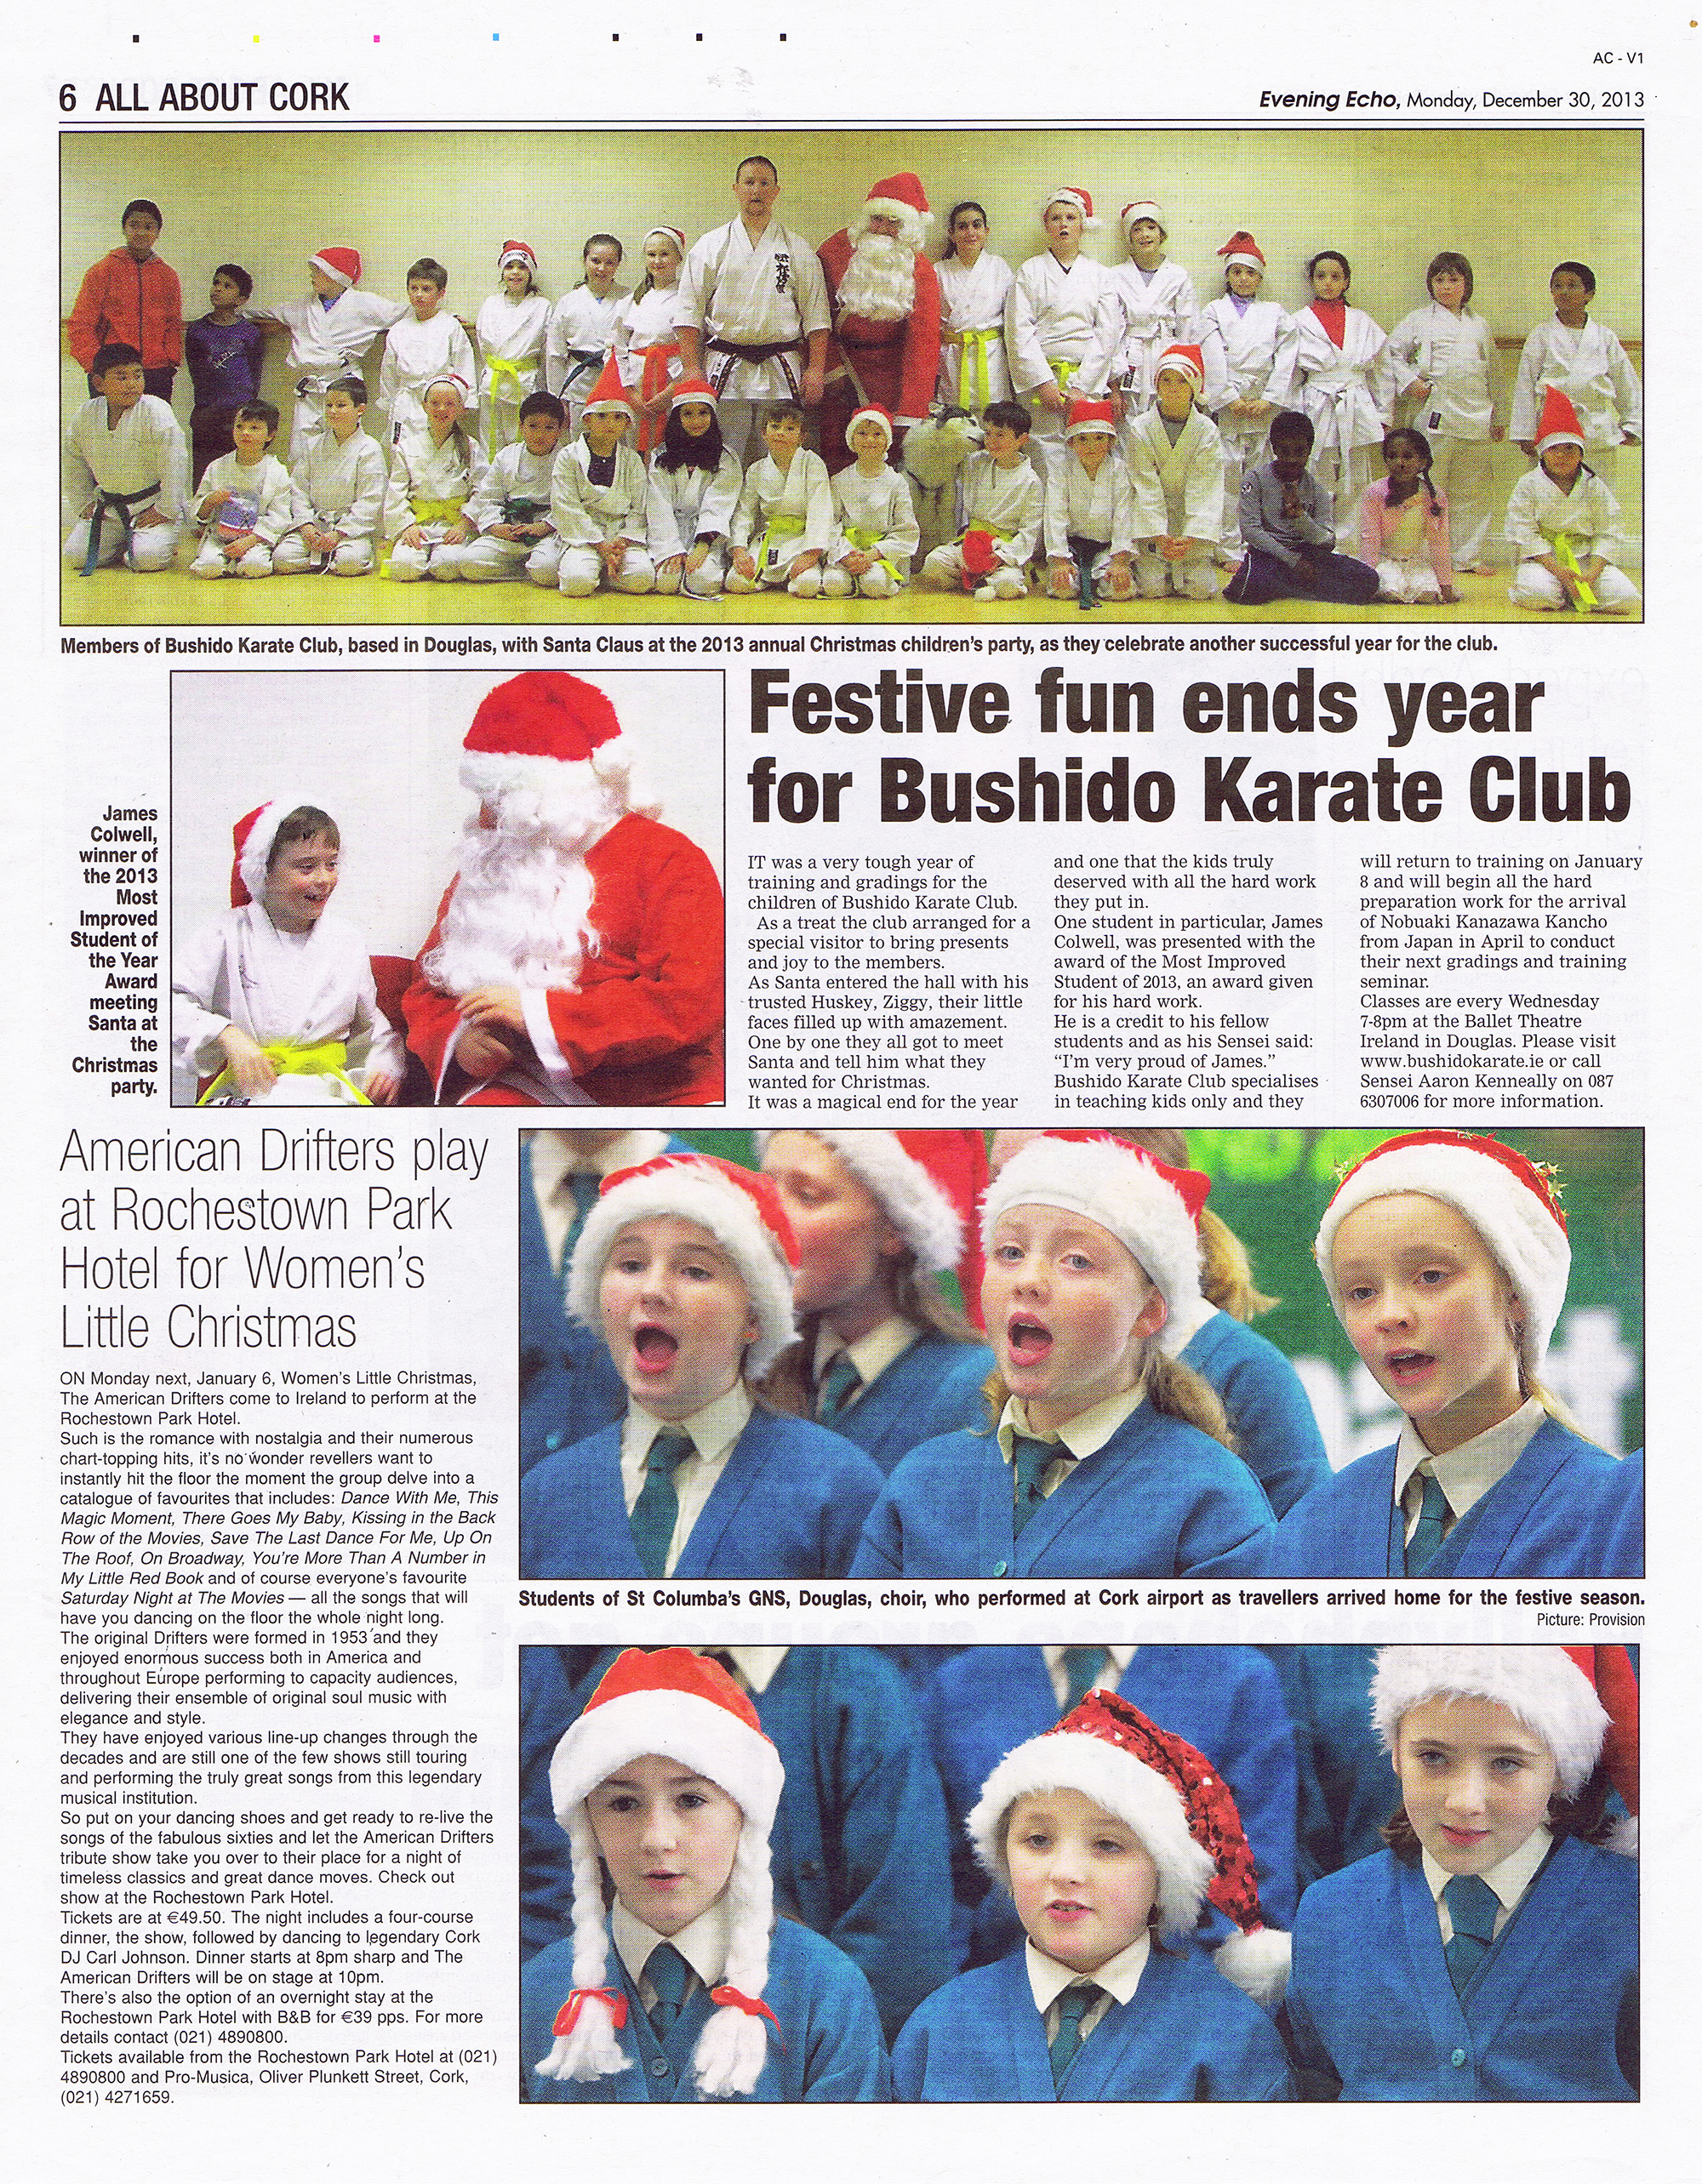 Evening Echo feature on the 30th December 2013 when the club had its Annual Bushido Karate Club Childrens Christmas Santa Party